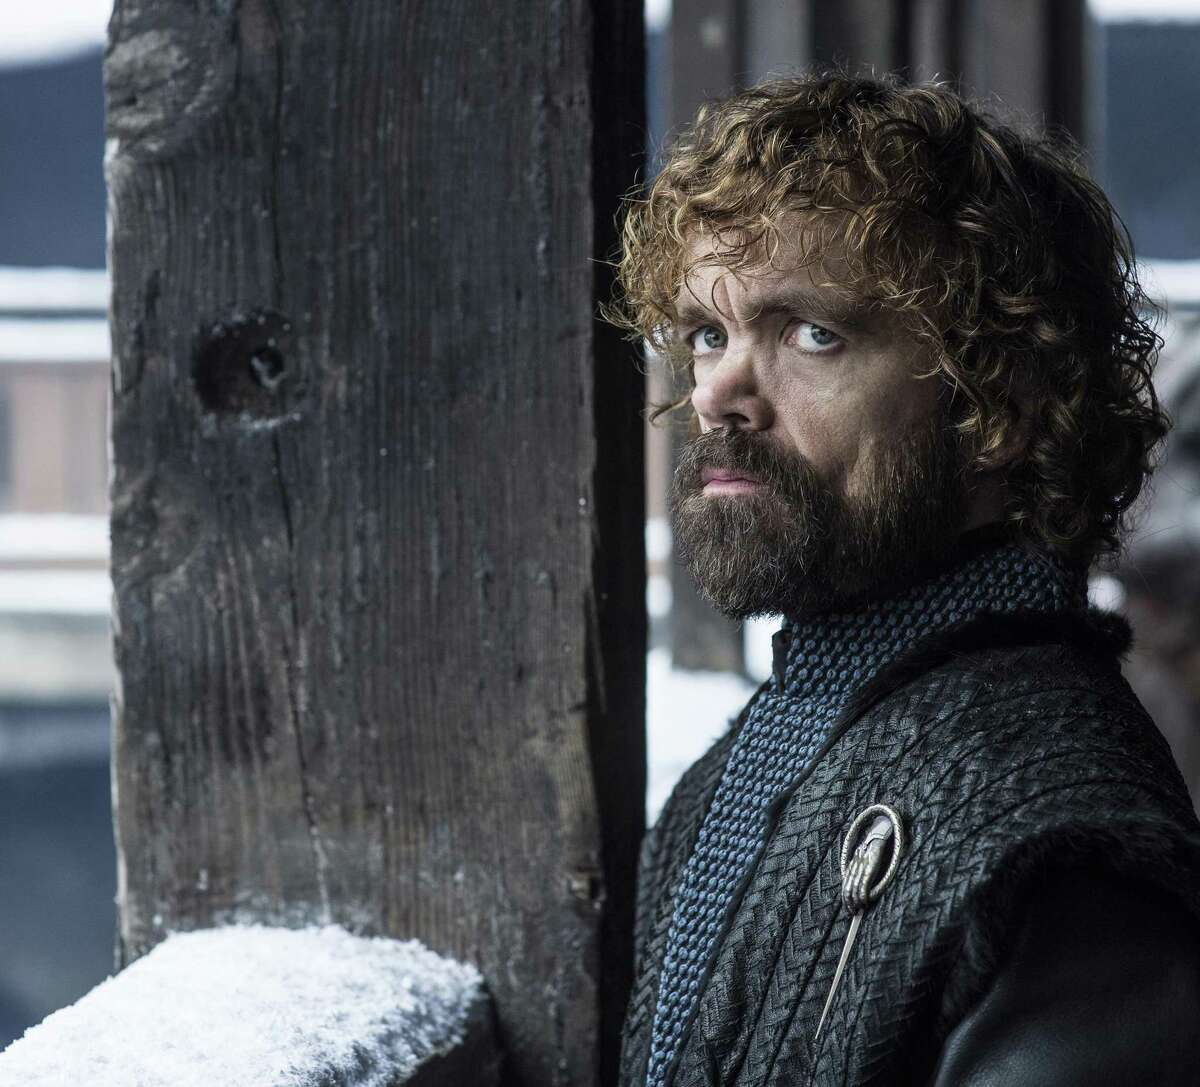 Tyrion Lannister (Peter Dinklage) is a clever survivor whose backstory still may contain some surprises.